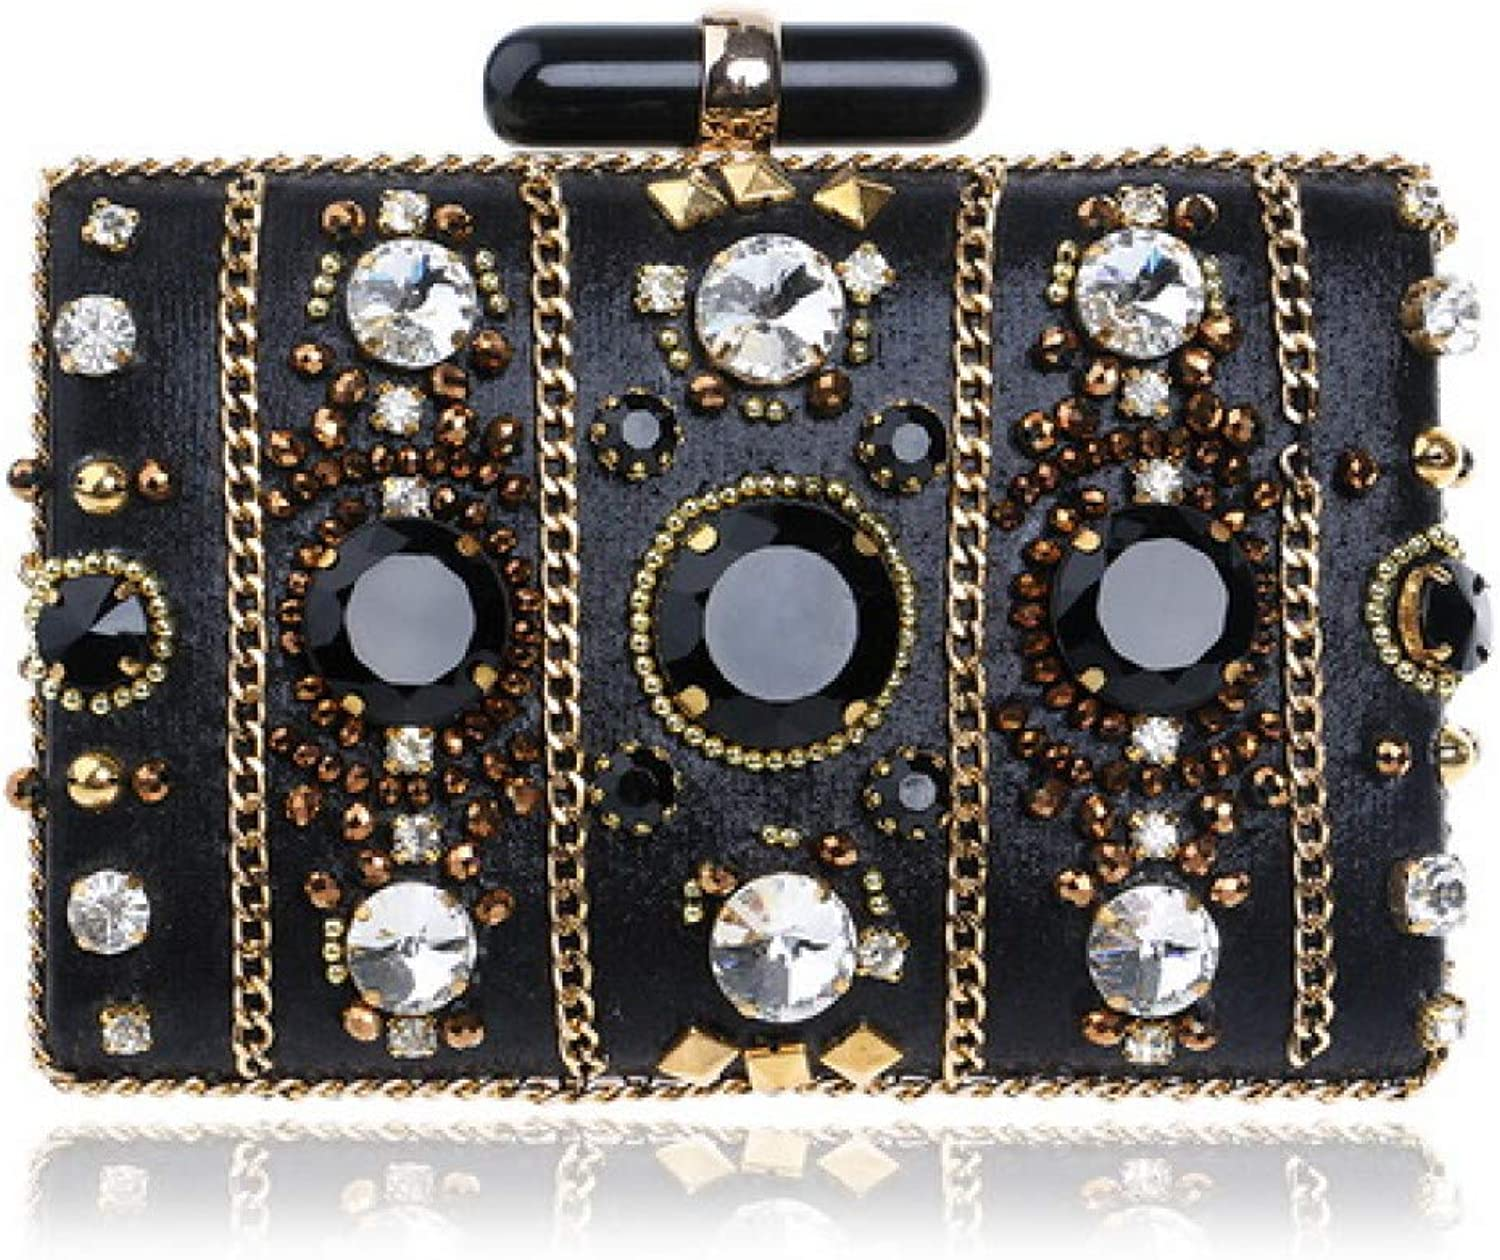 HKDUC Embroidery Women Handbags Beaded Chain Accessory Metal Day Clutches Party Wedding Evening Bags One Side Diamonds Purse